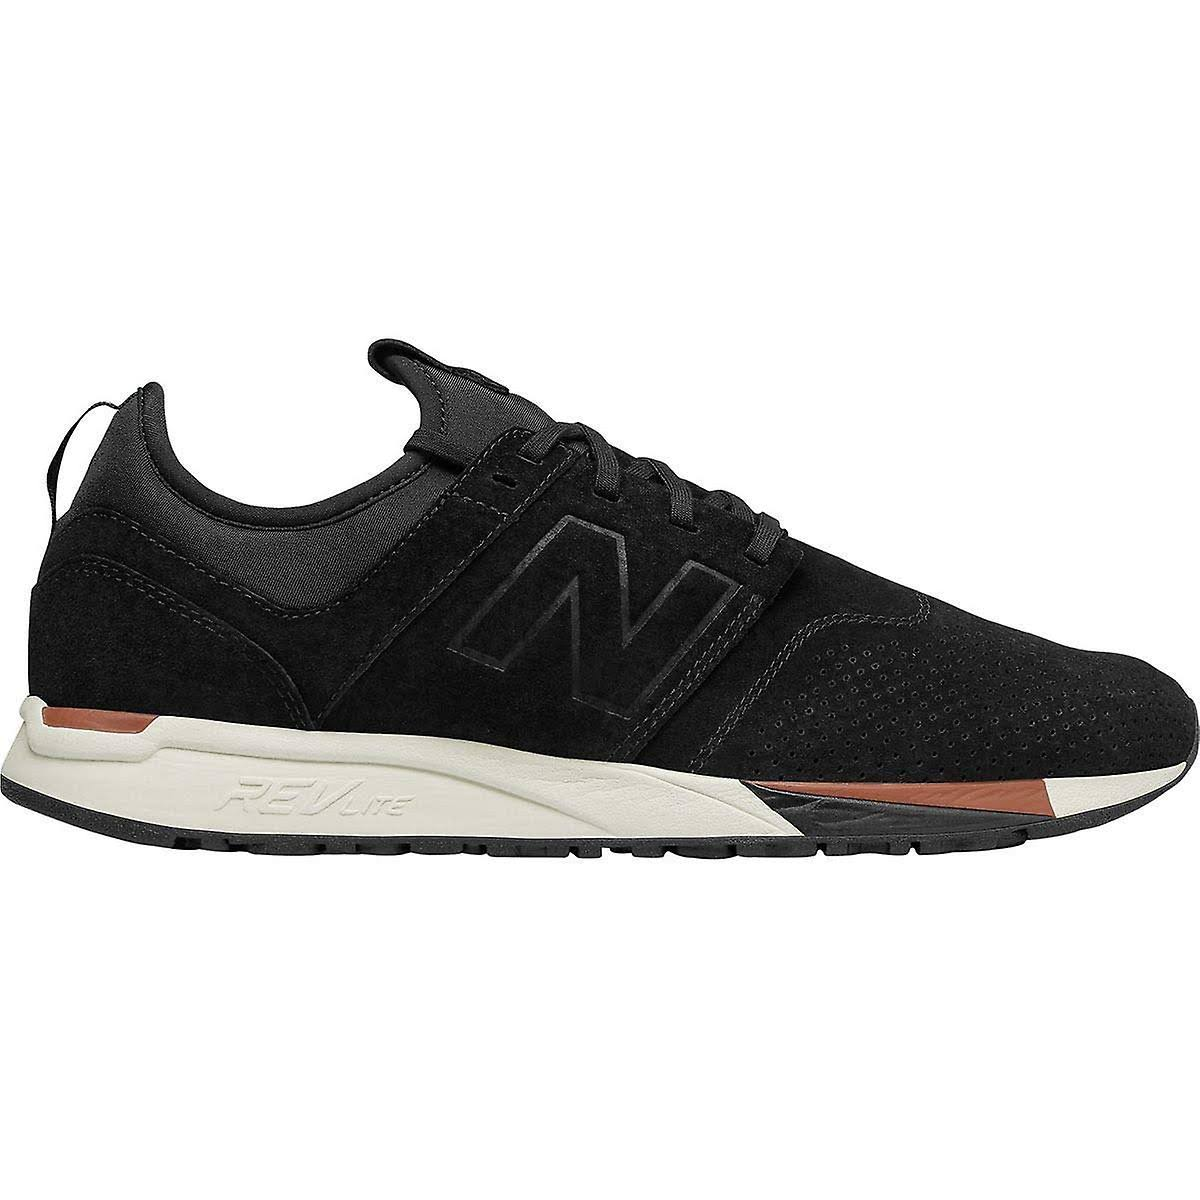 2 Balance Trainers 247 New 0 white tan Luxe Black Black Suede dt0xqxTn14